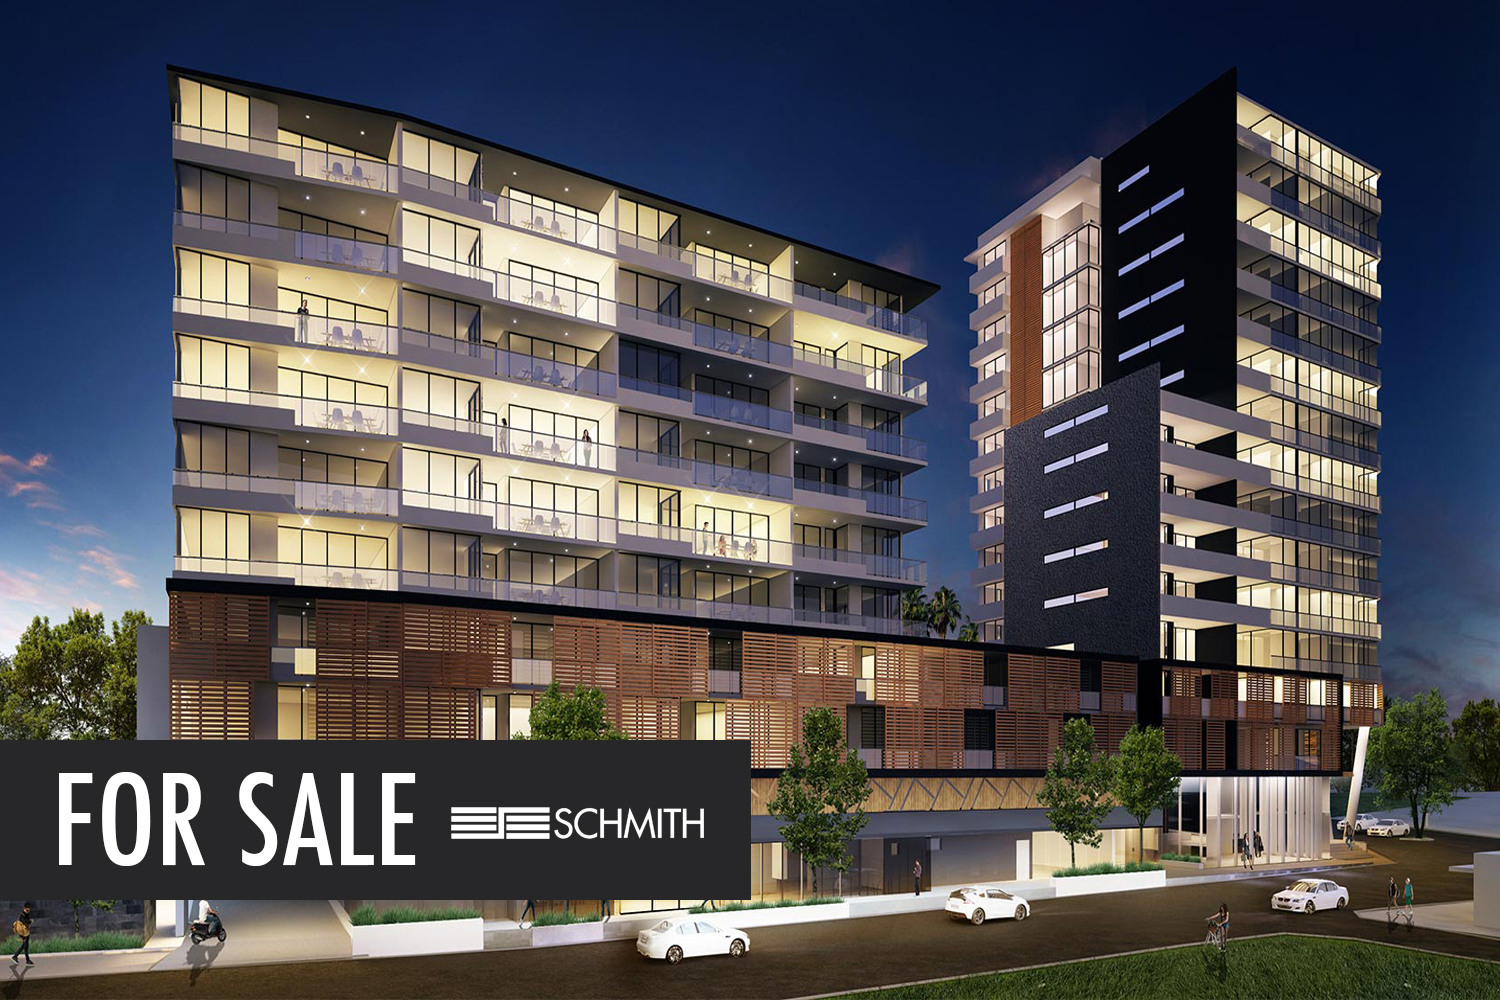 BAY GRAND APARTMENTS  2 BAY STREET, TWEED HEADS NSW 2485  FIND OUT MORE